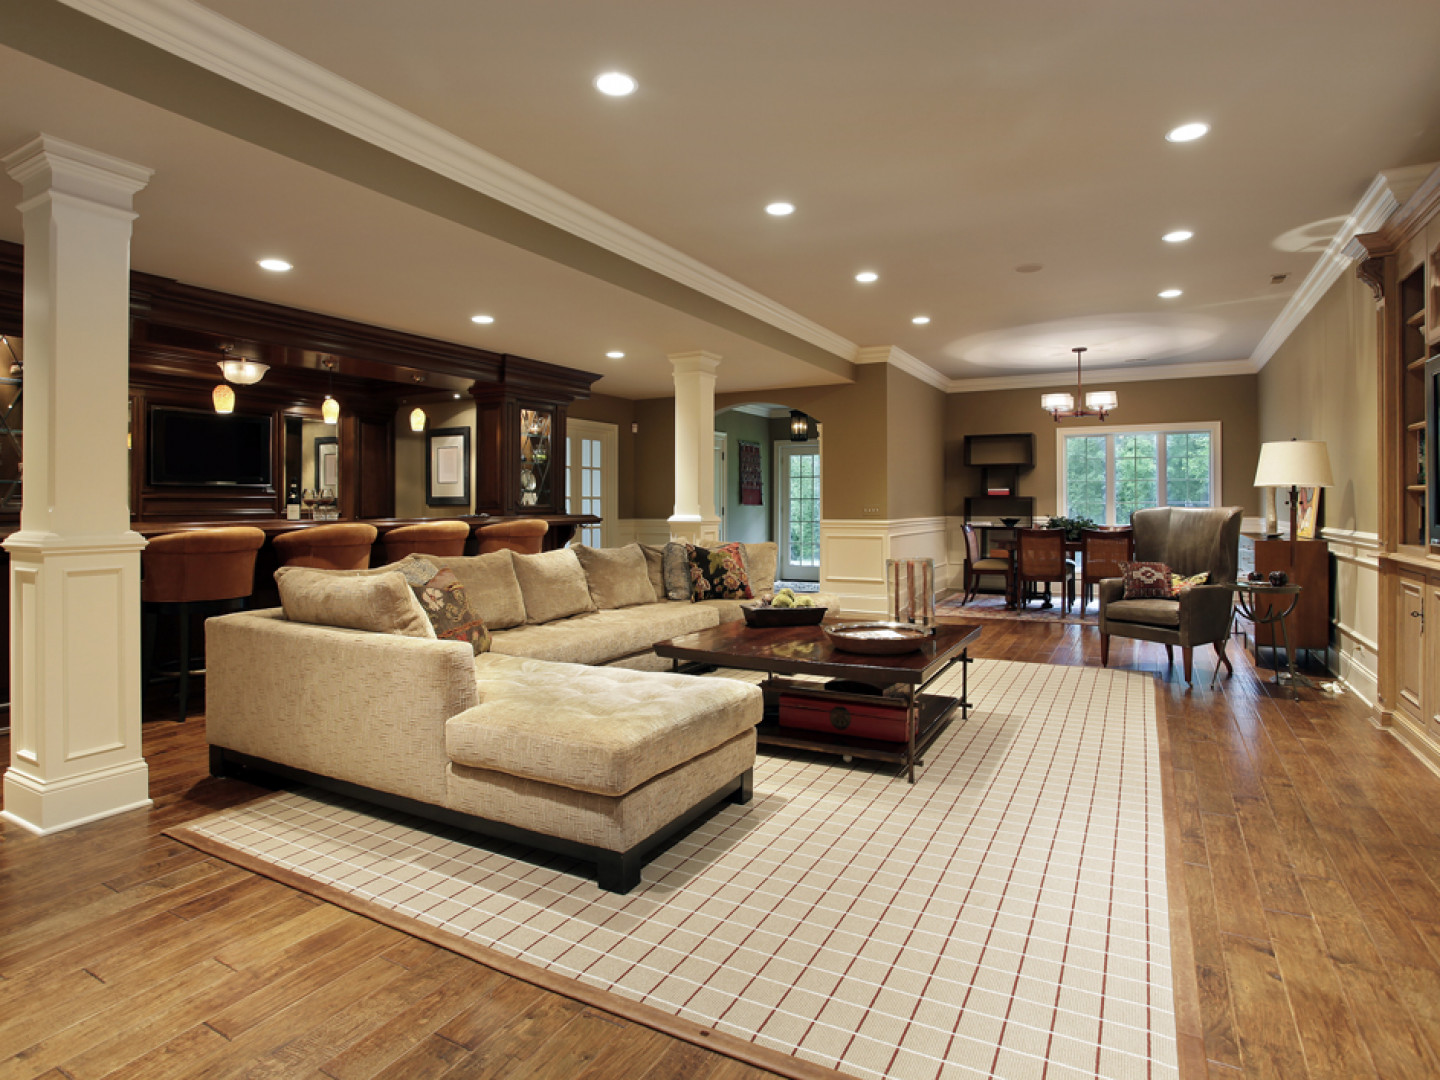 What will your new basement look like?